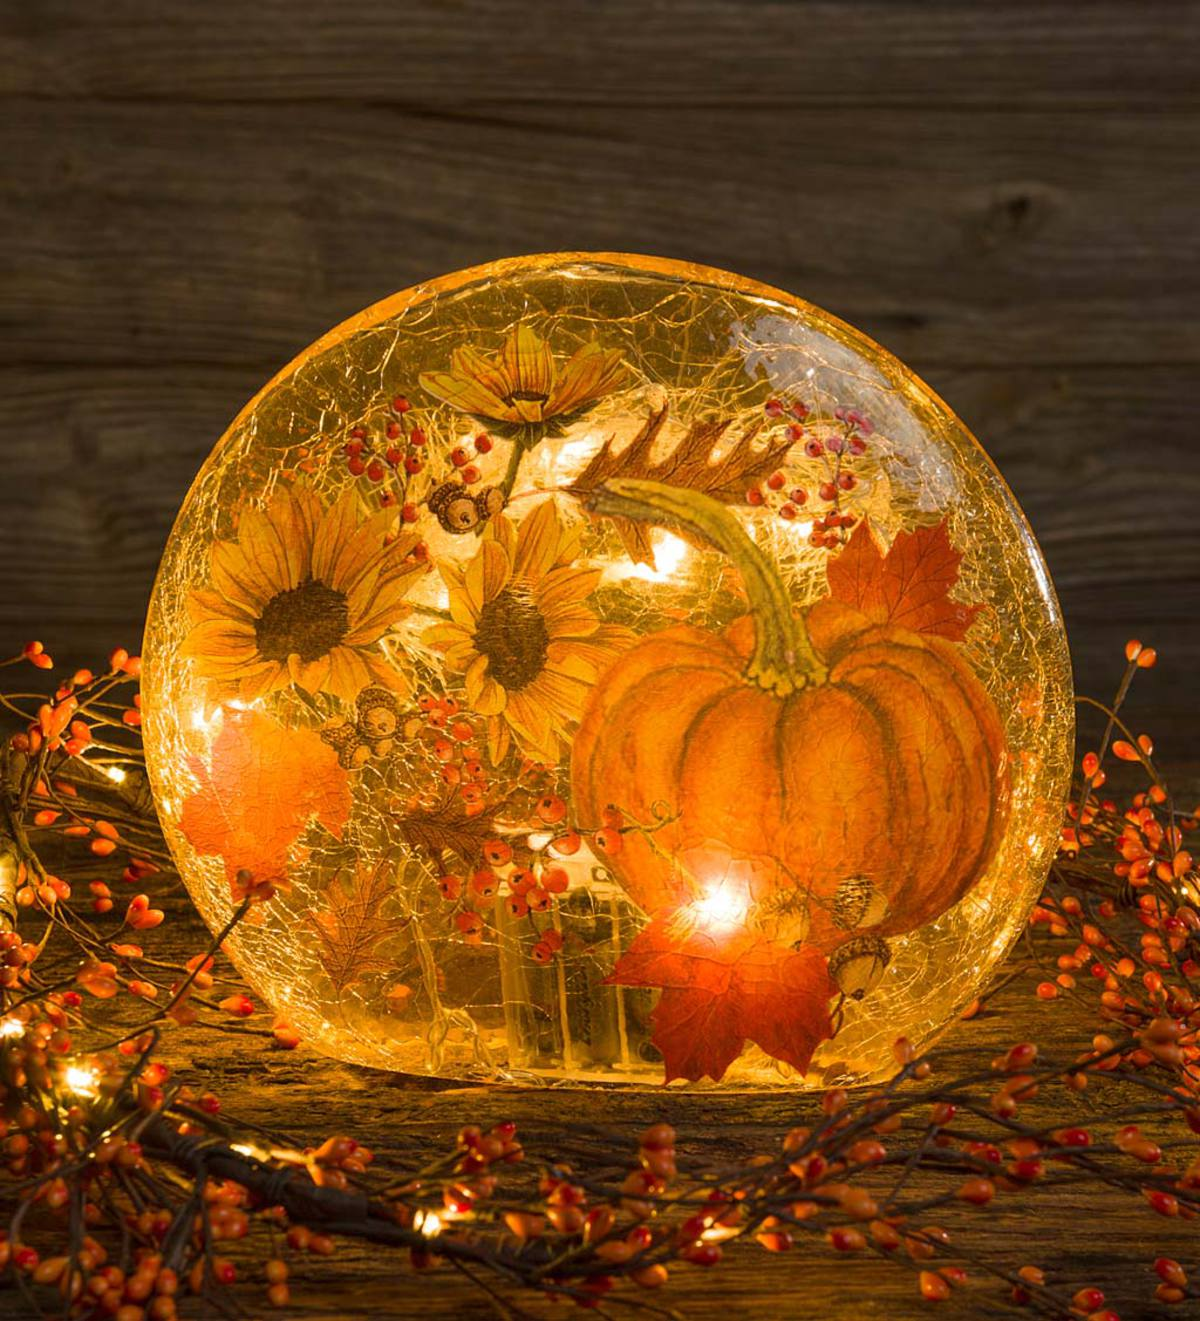 Lighted Sunflowers and Pumpkin Glass Decor